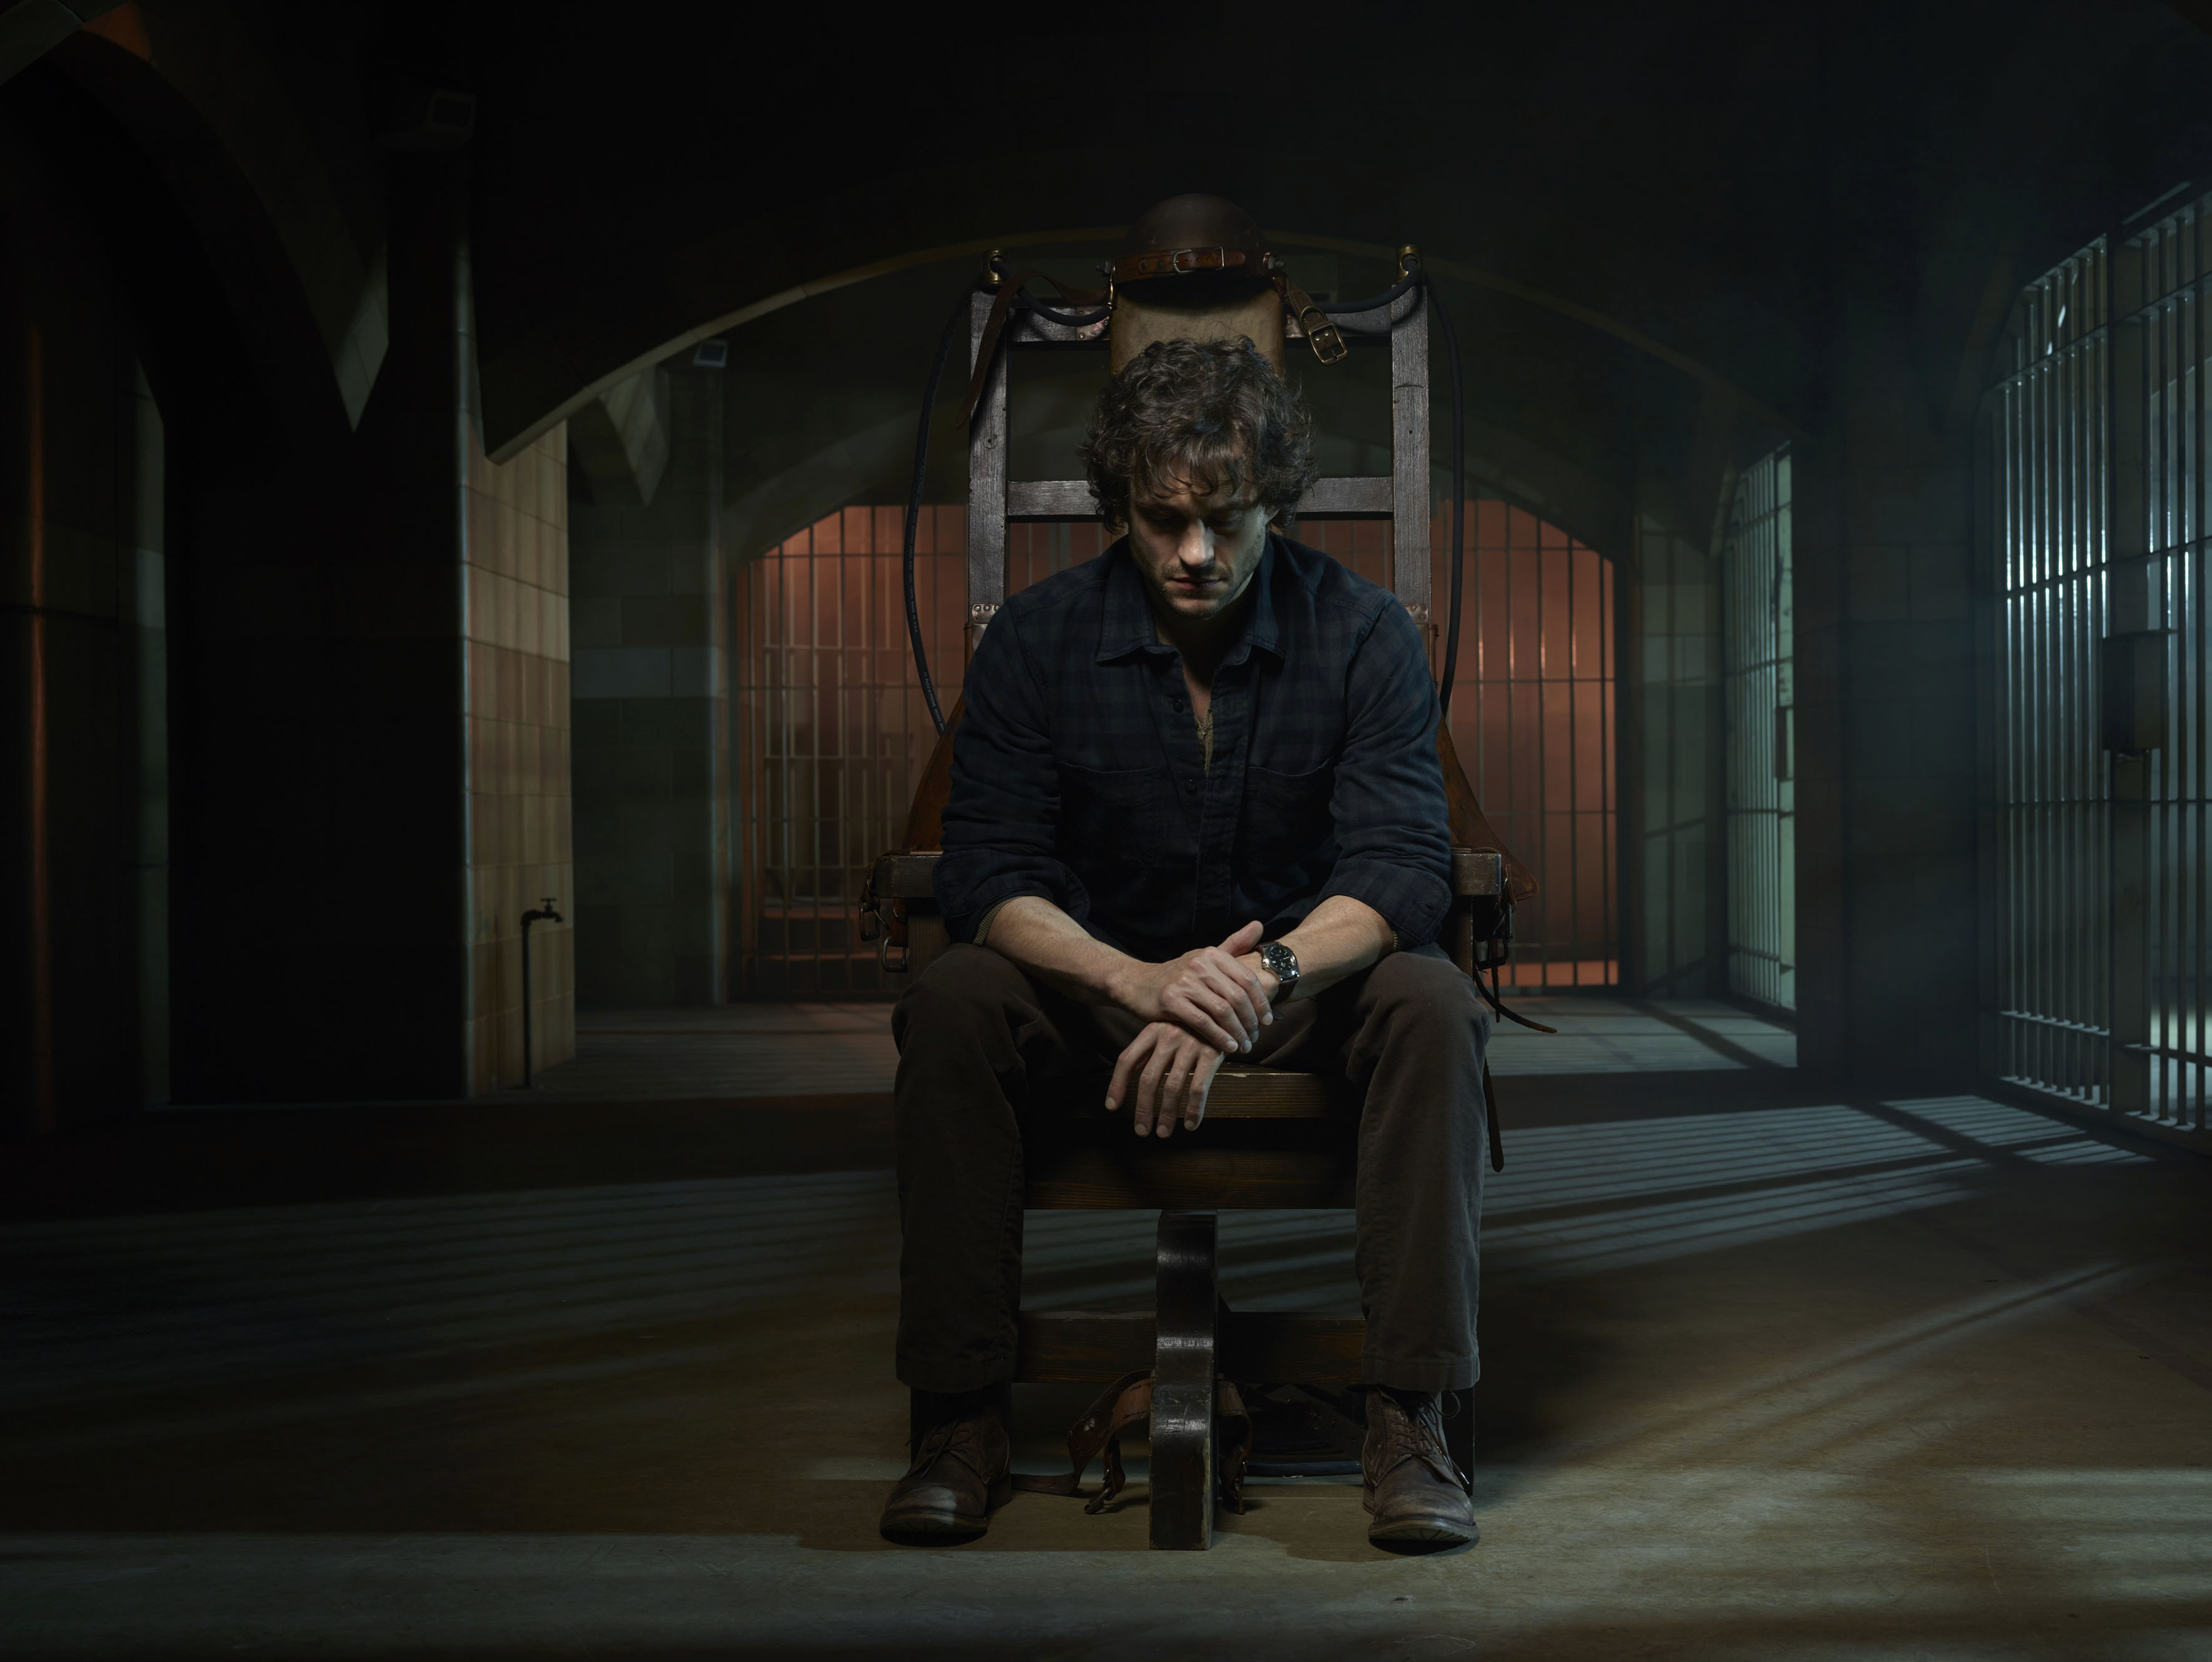 Hannibal srie TV images Hugh Dancy as Special Agent Will Graham 3543x2662